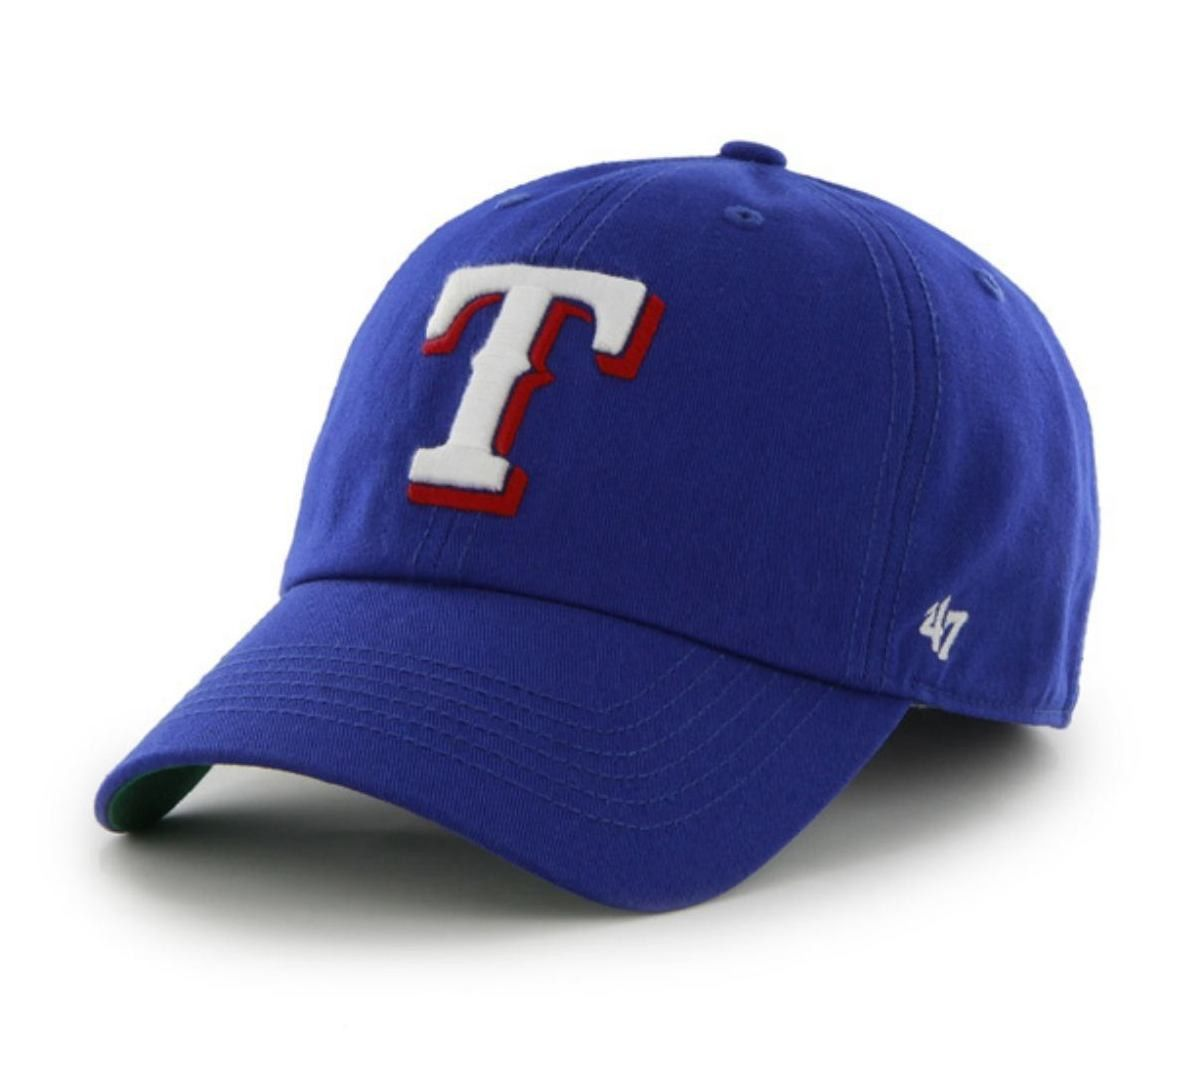 9e43d7f03bf5a Texas Rangers 47 Brand Blue The Franchise Fitted Hat Cap Gorras